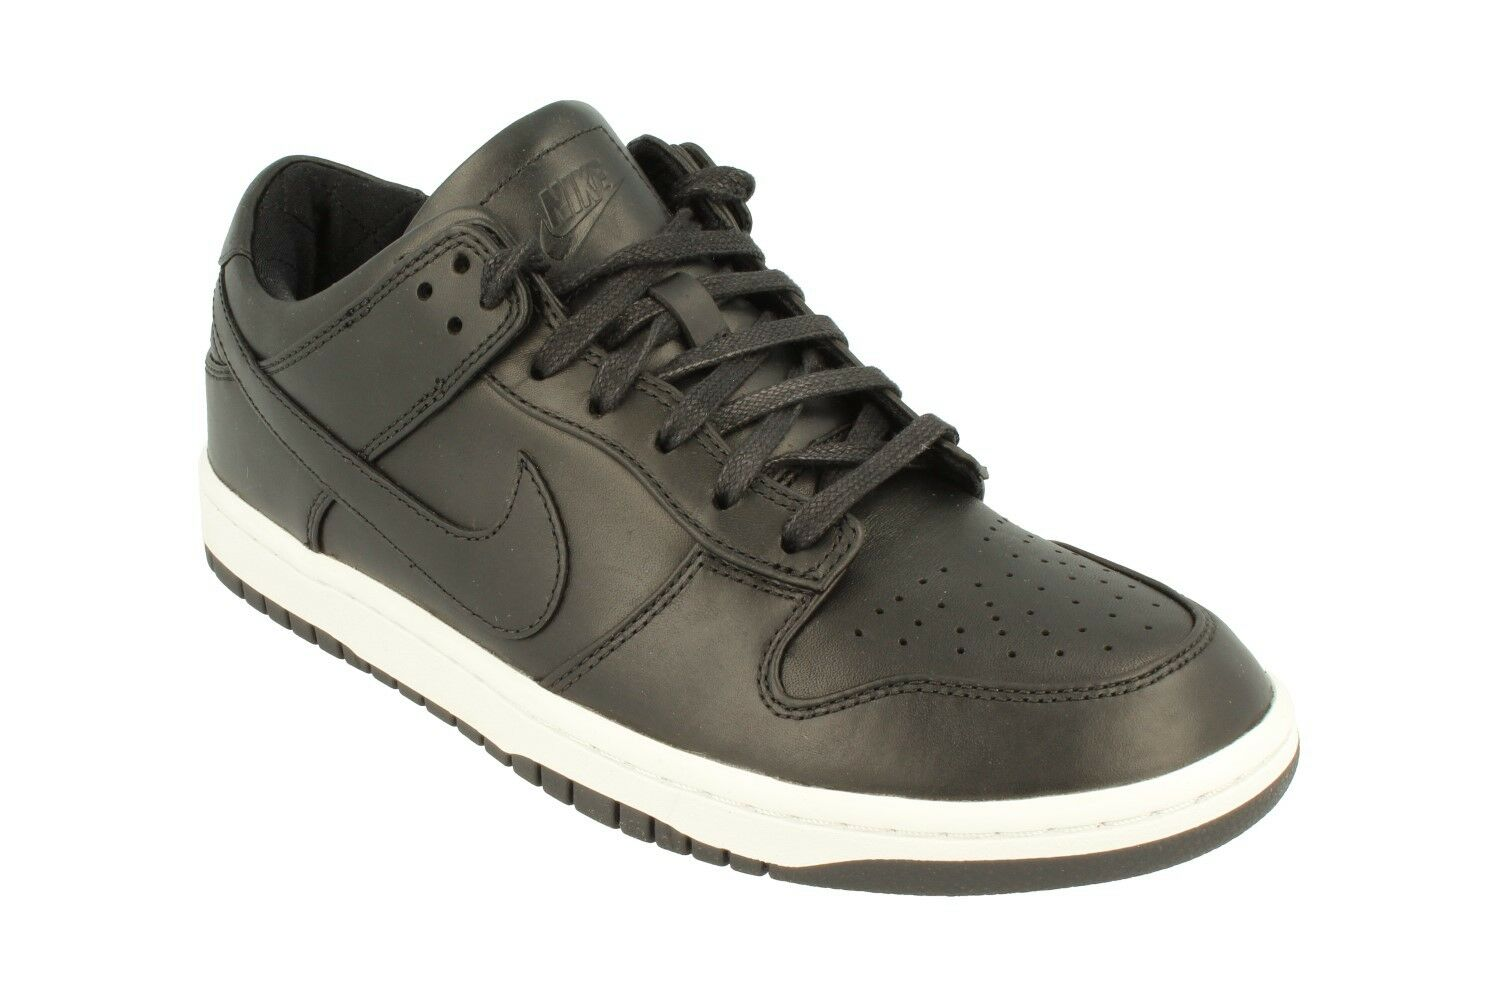 Nikelab Dunk Lux Low Hommes Trainers 857587 Sneakers Chaussures 001